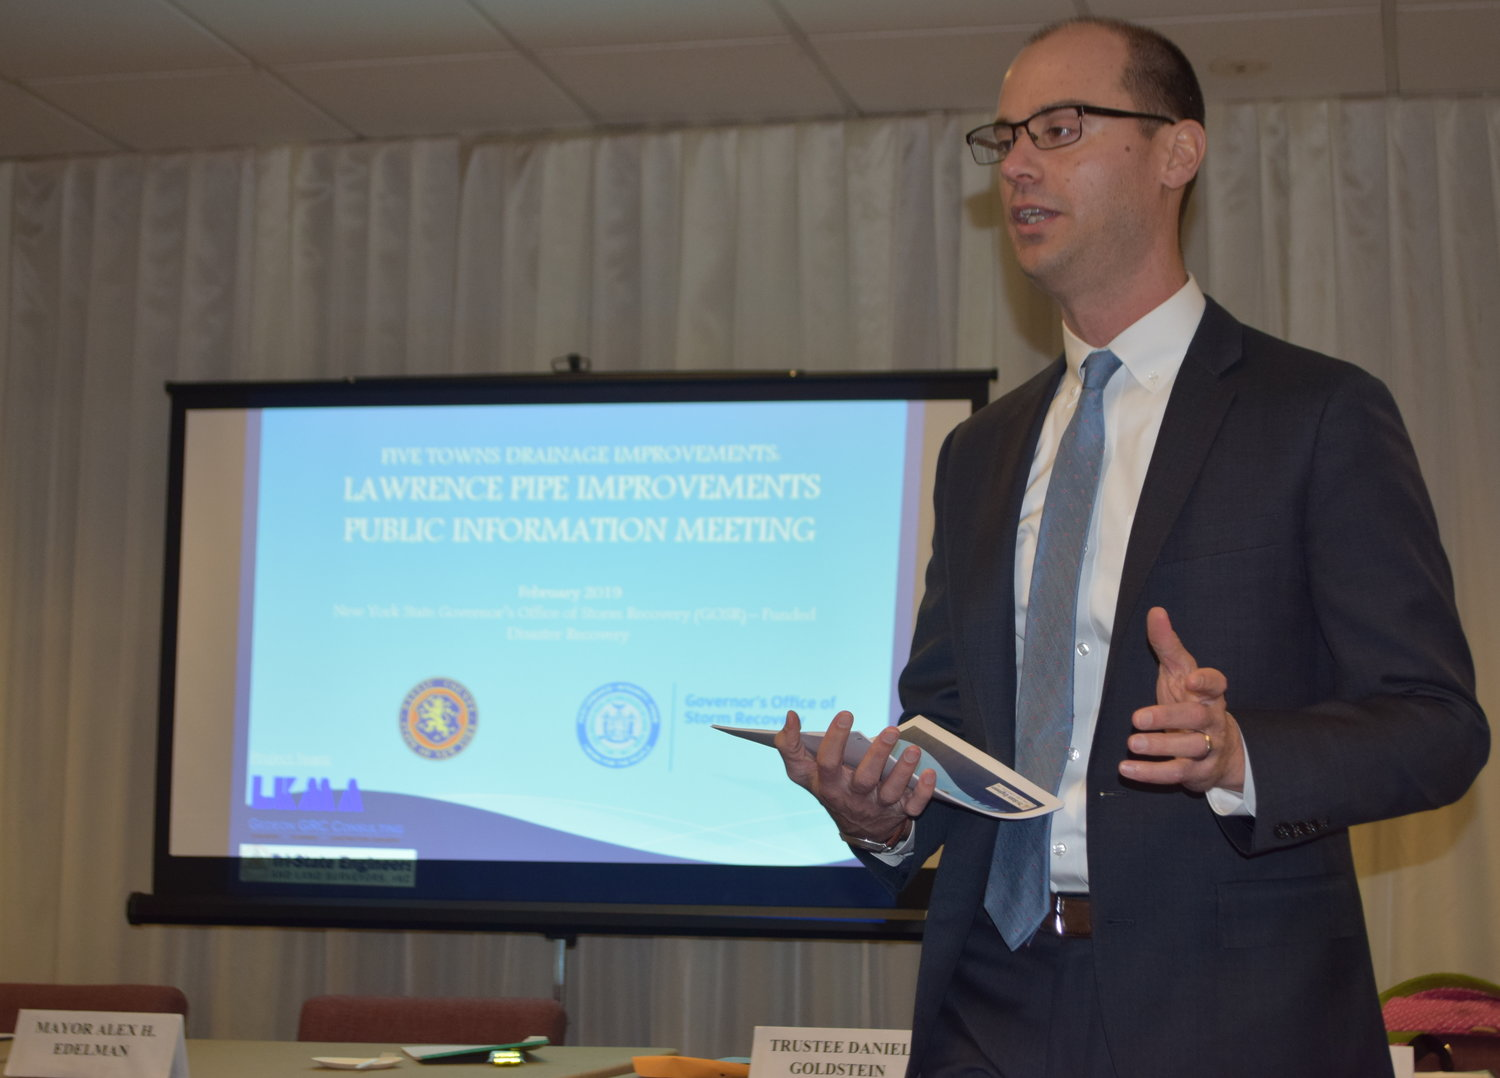 Nassau County Deputy Planning Commissioner Sean Sallie introduced the Lawrence drainage improvement project at the village board meeting on Feb. 14.